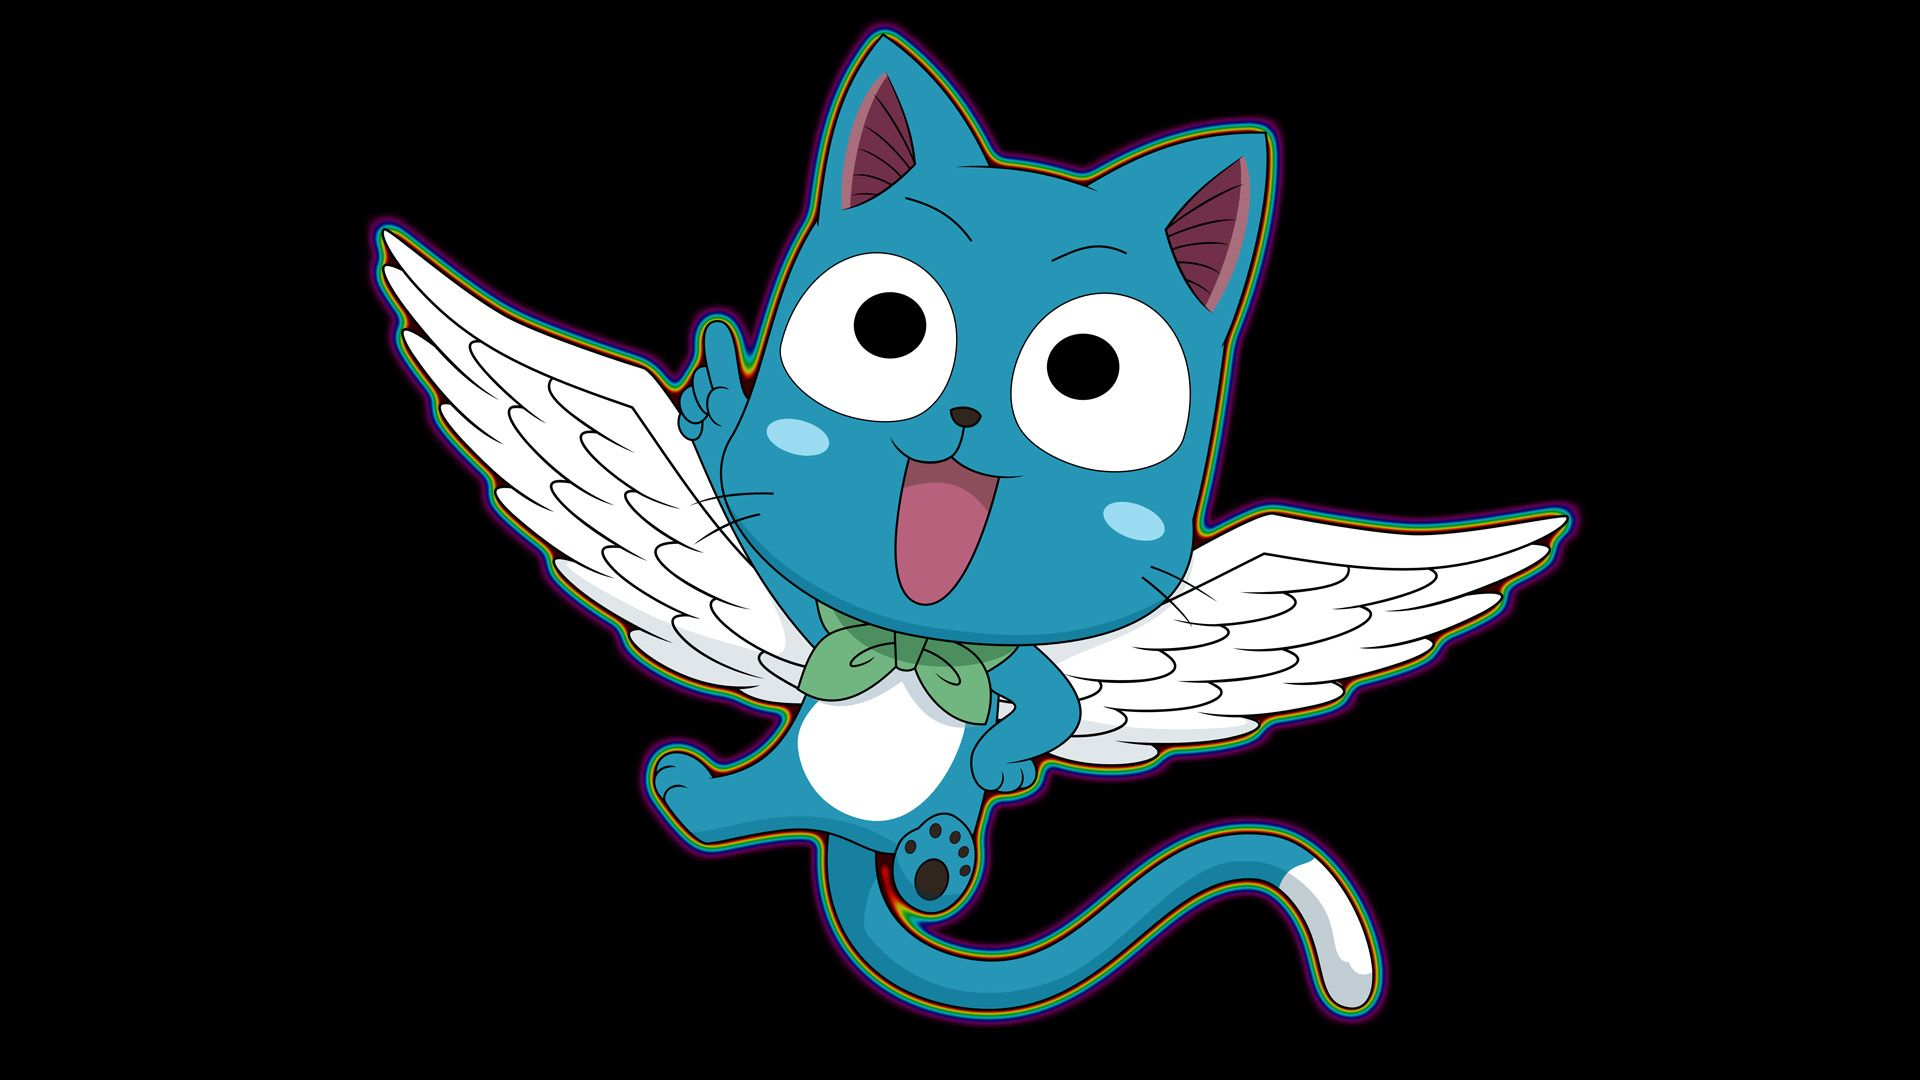 Happy Fairy Tail Wallpaper Hd Wallpapers 1080p Fairy Tail Fairy Wallpaper